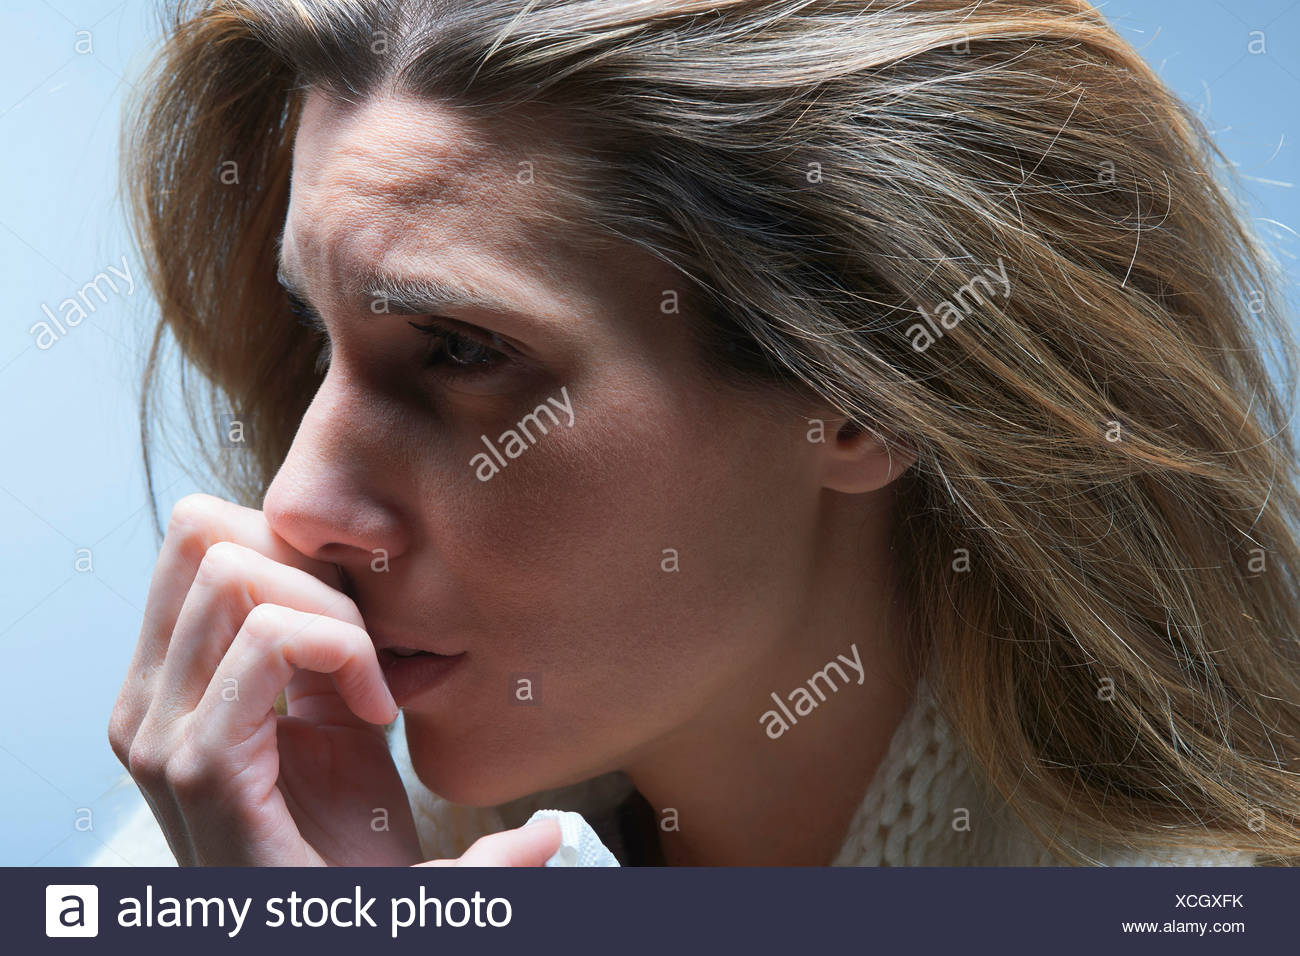 Close up of impatient woman with hand on bouche Photo Stock